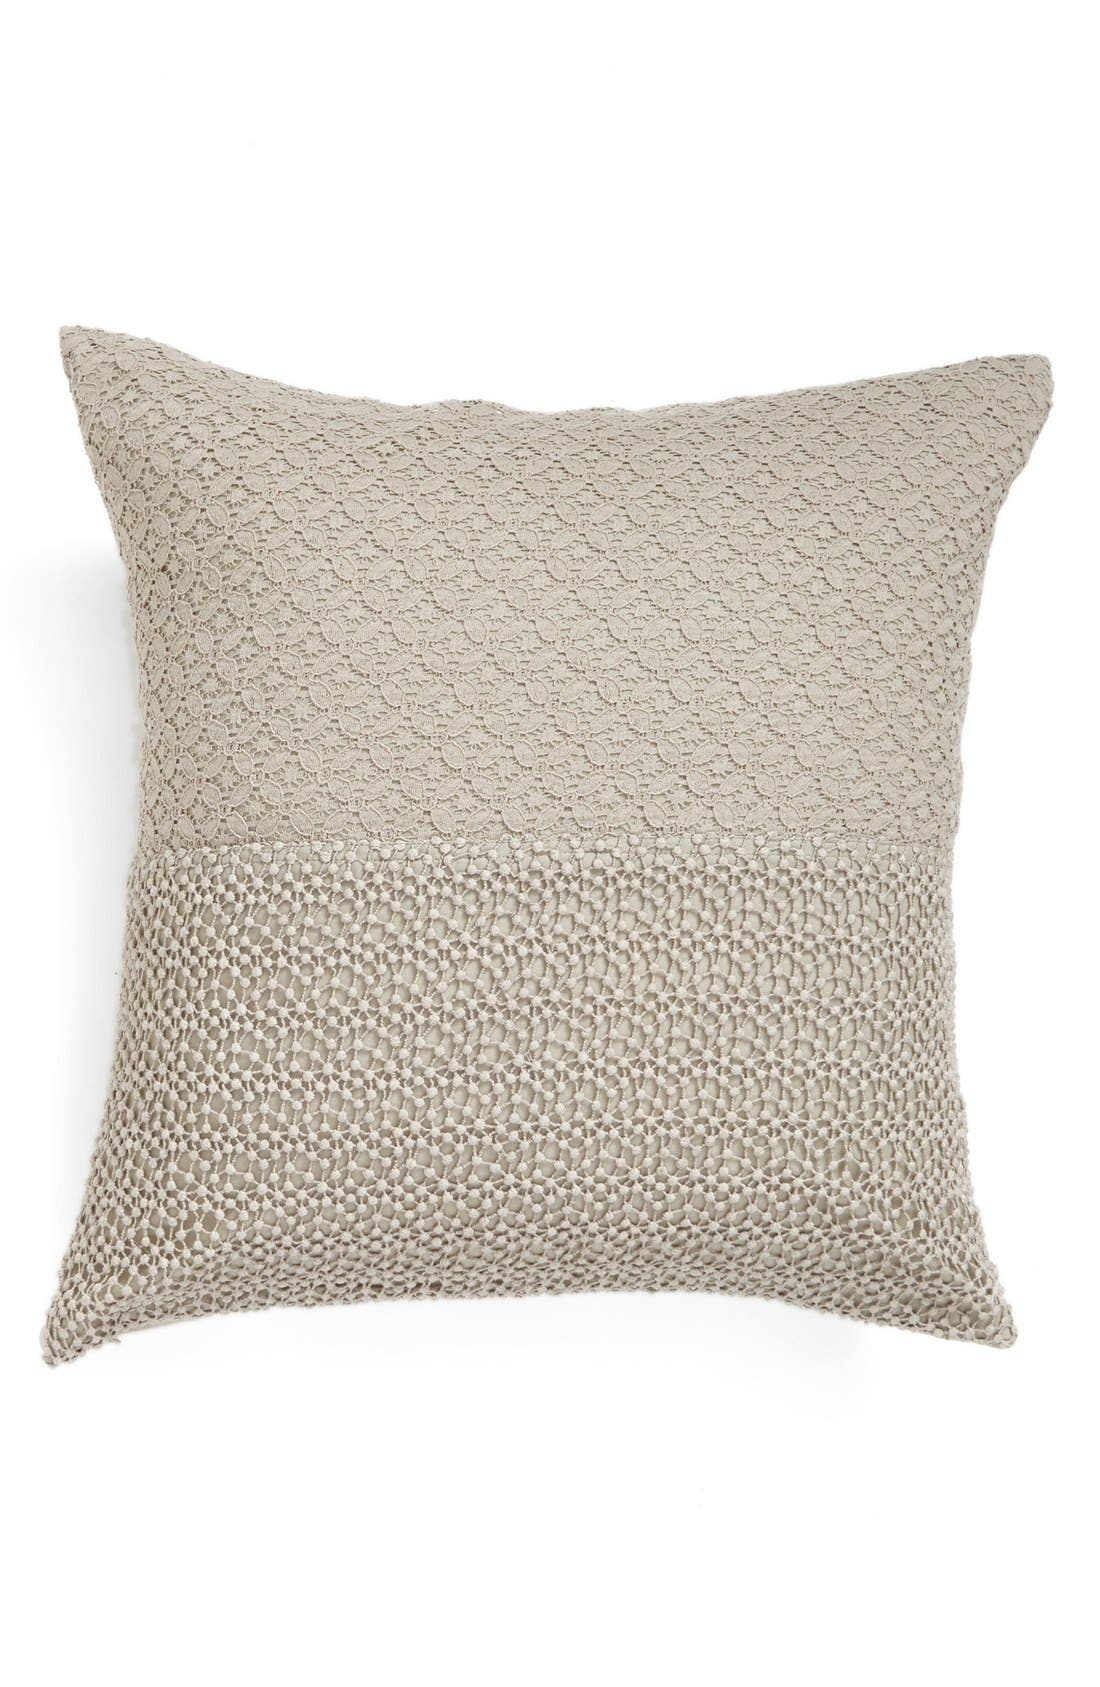 Alternate Image 1 Selected - Nordstrom at Home 'Maya' Lace Trim Pillow